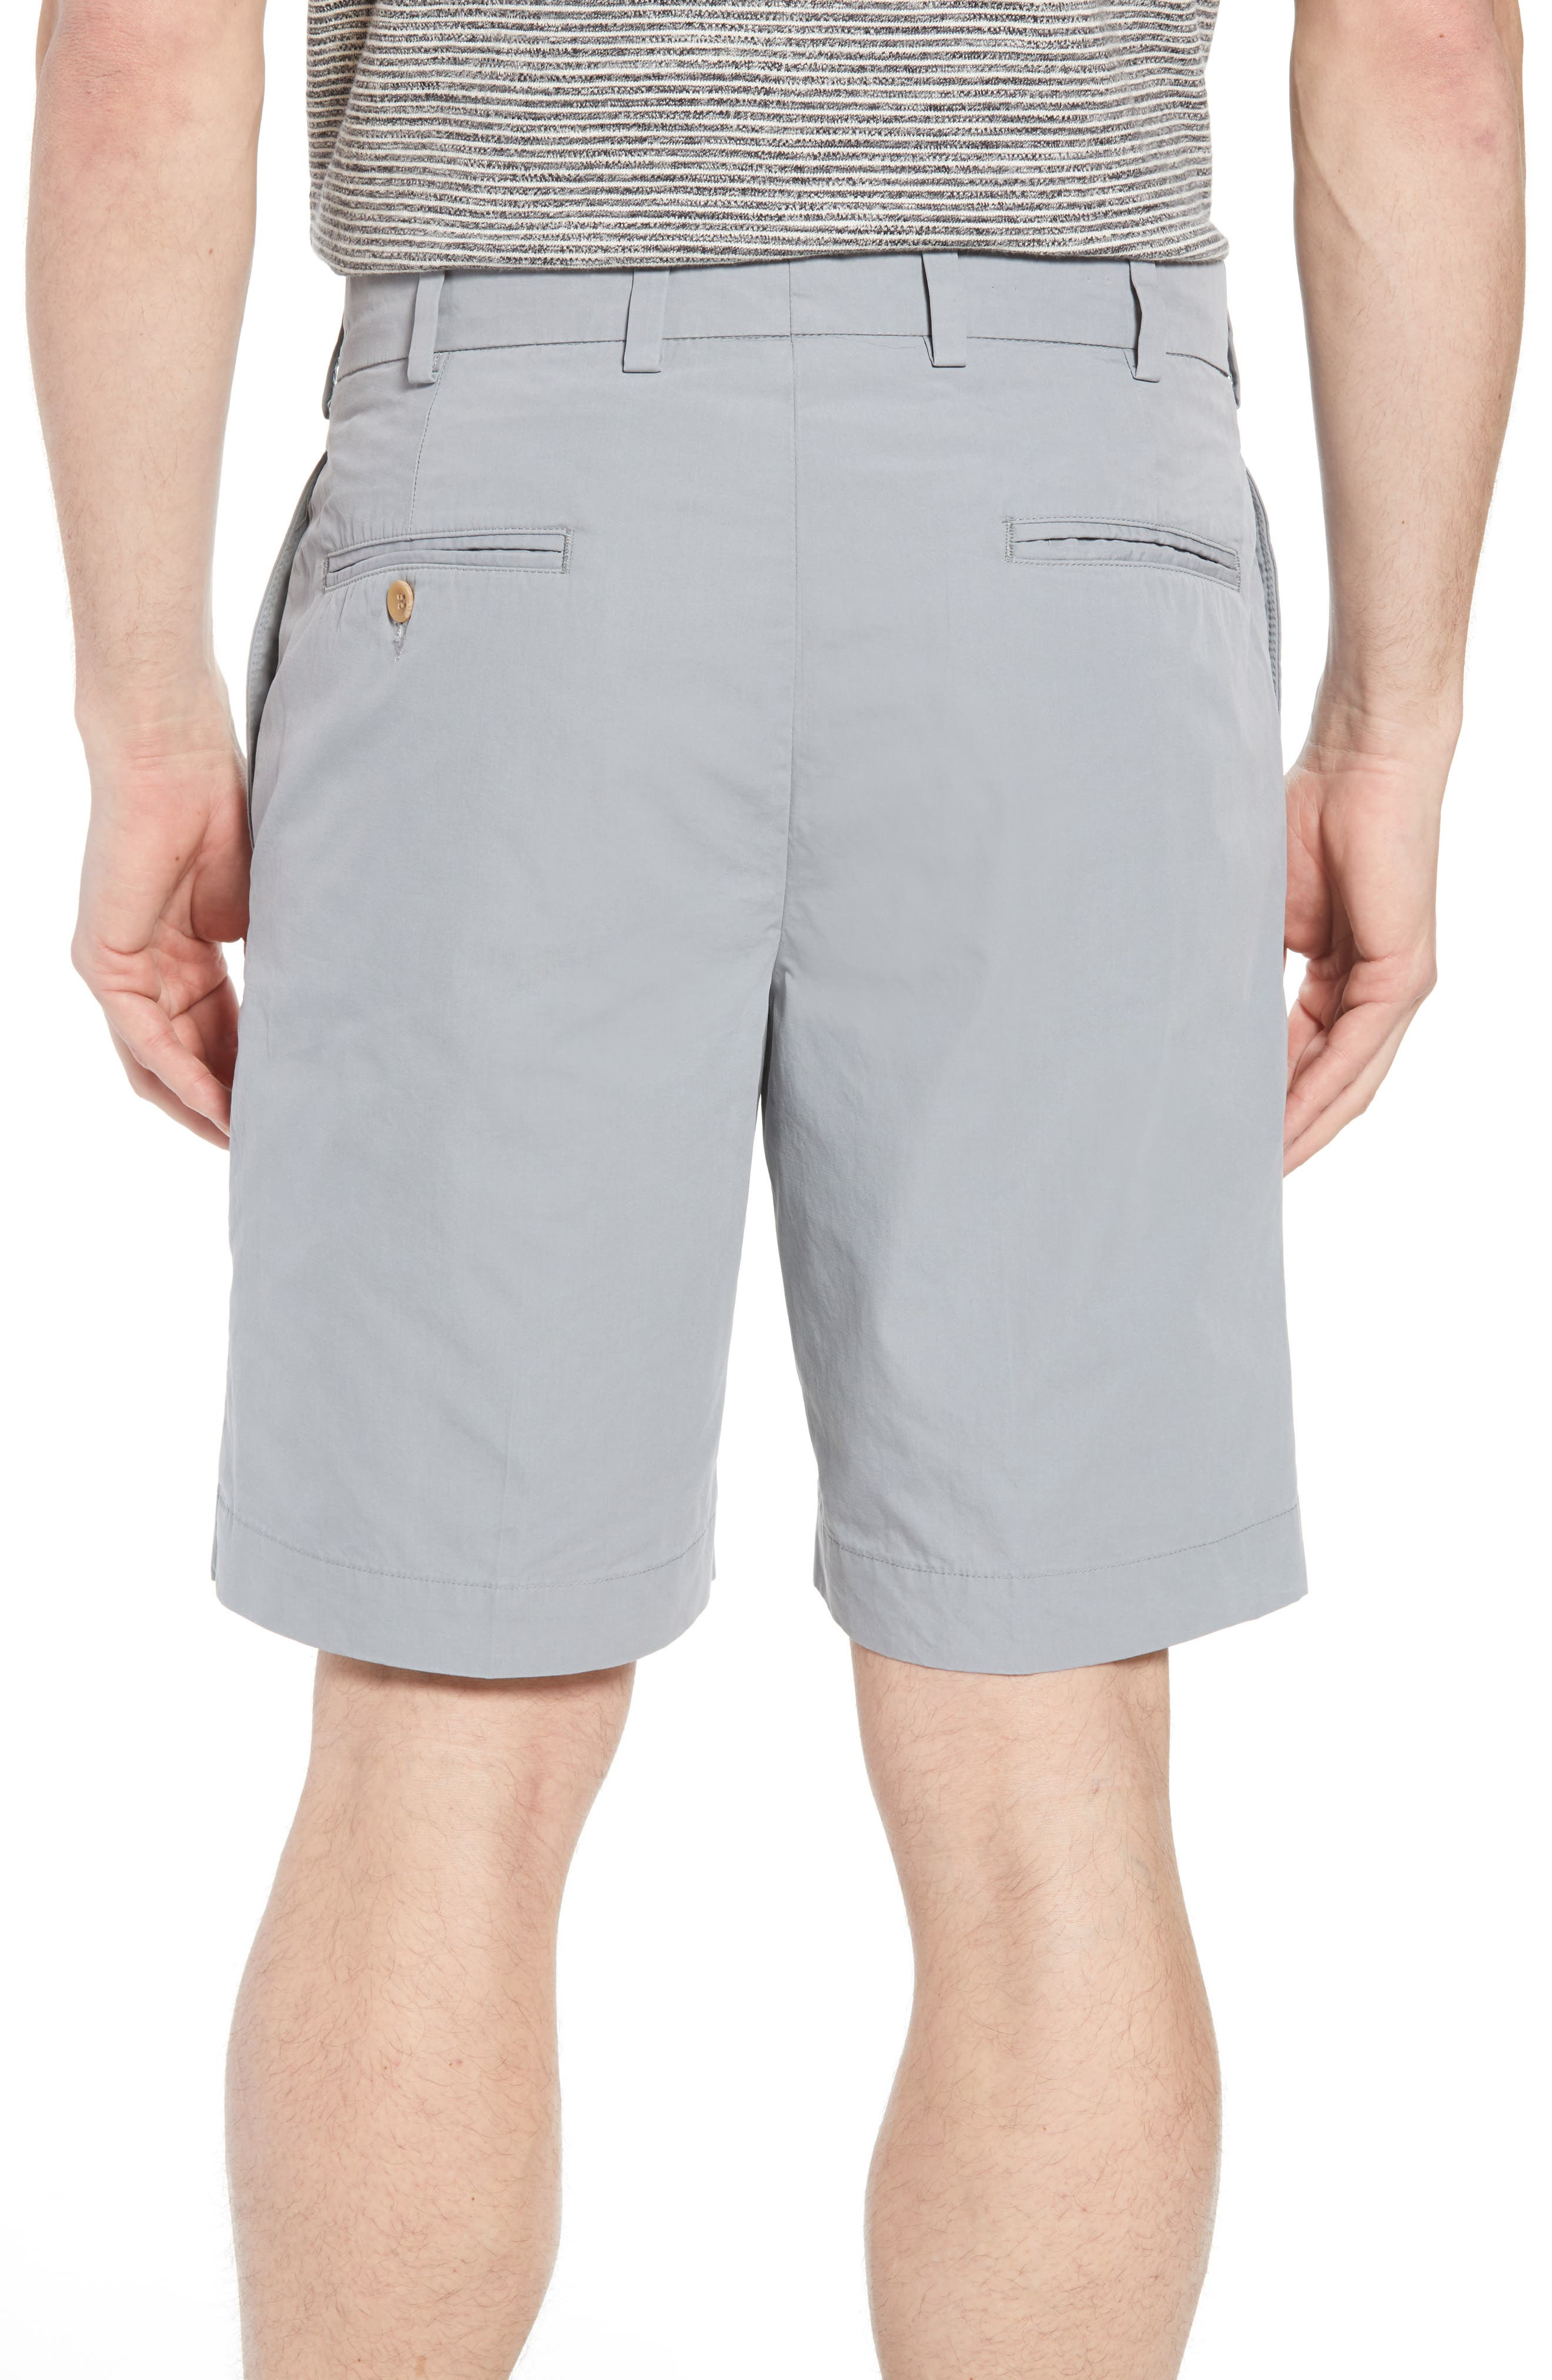 M2 Classic Fit Flat Front Tropical Cotton Poplin Shorts,                             Alternate thumbnail 2, color,                             Nickel